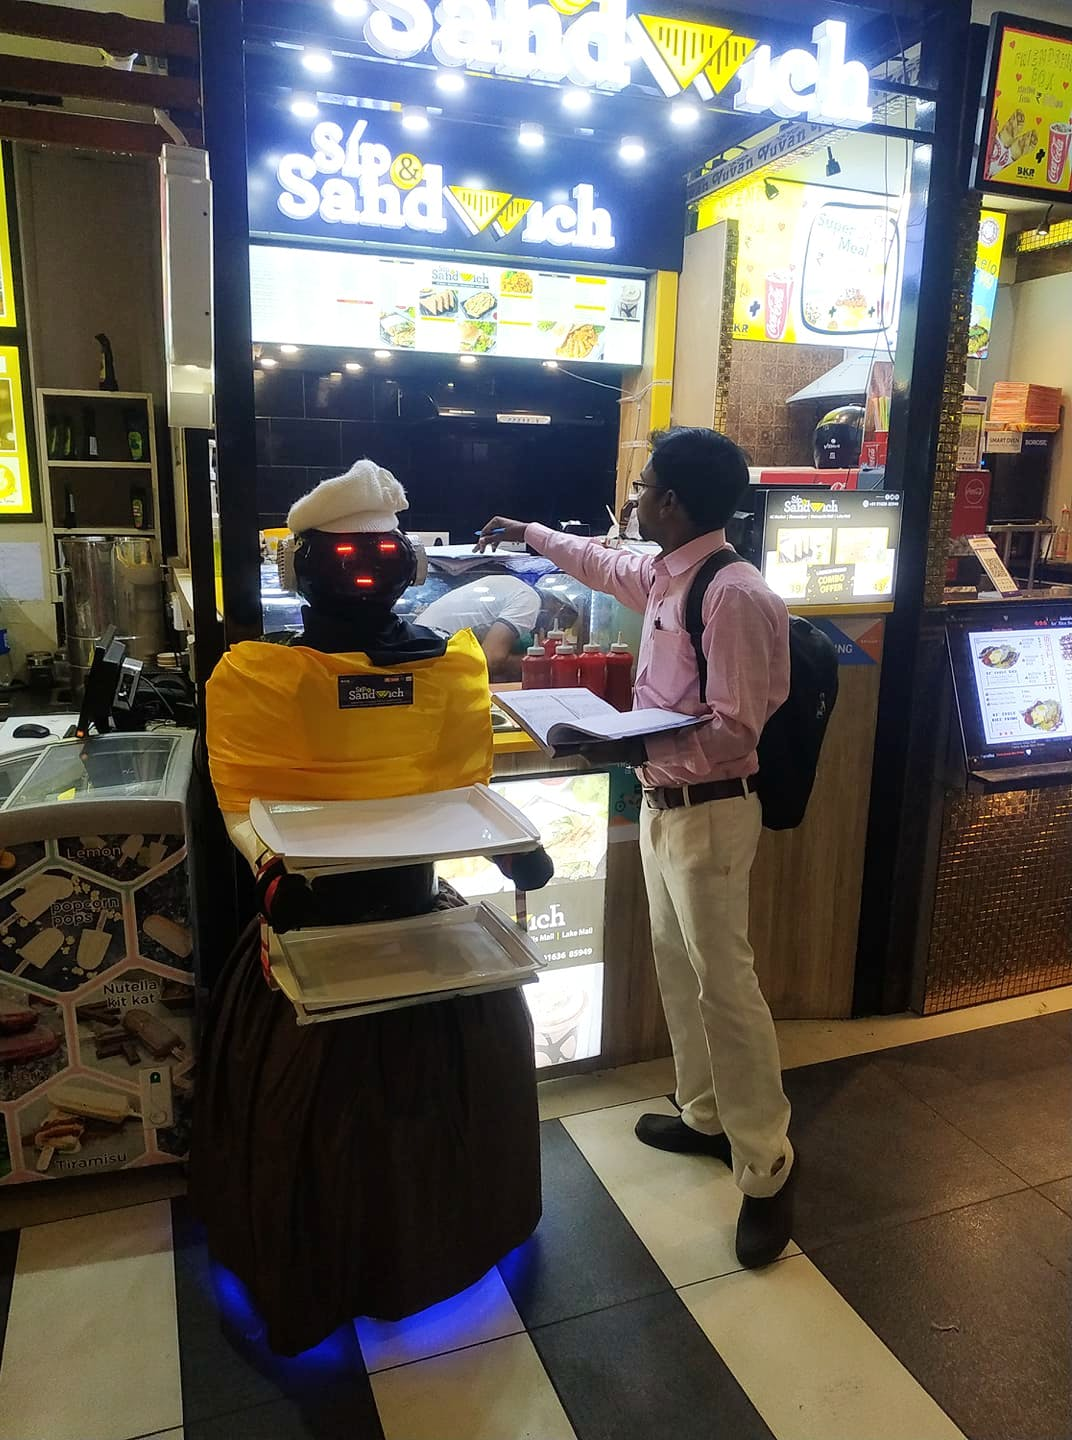 Yellow,Games,Fast food restaurant,Technology,Electronic device,Machine,Recreation,Fast food,Arcade game,Tourism